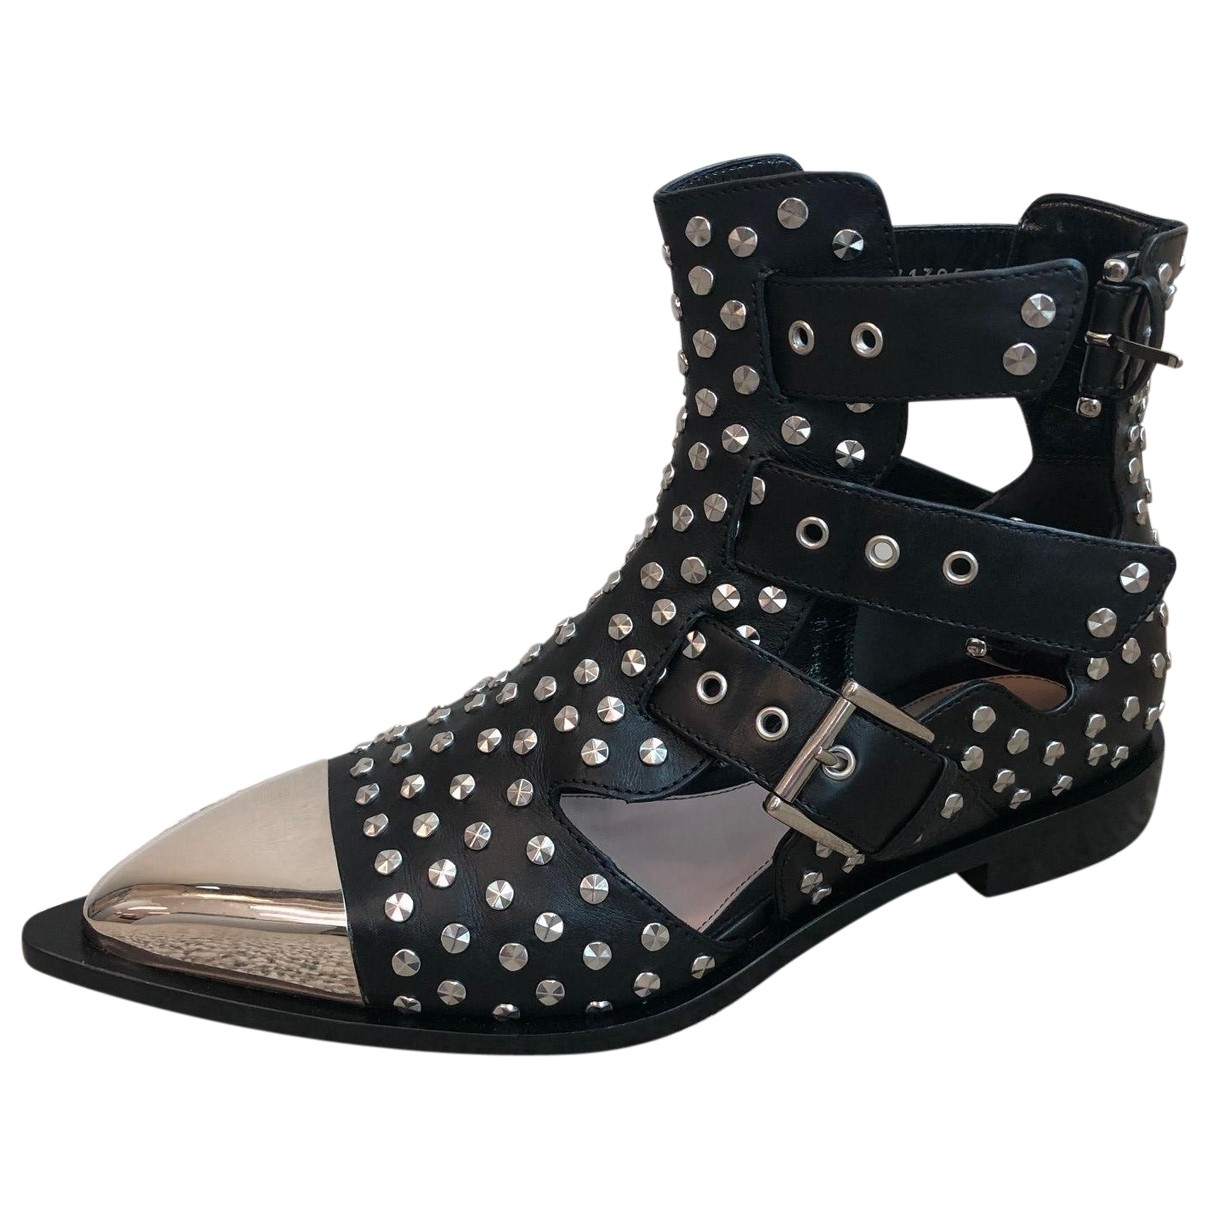 Alexander Mcqueen \N Black Leather Ankle boots for Women 38.5 EU